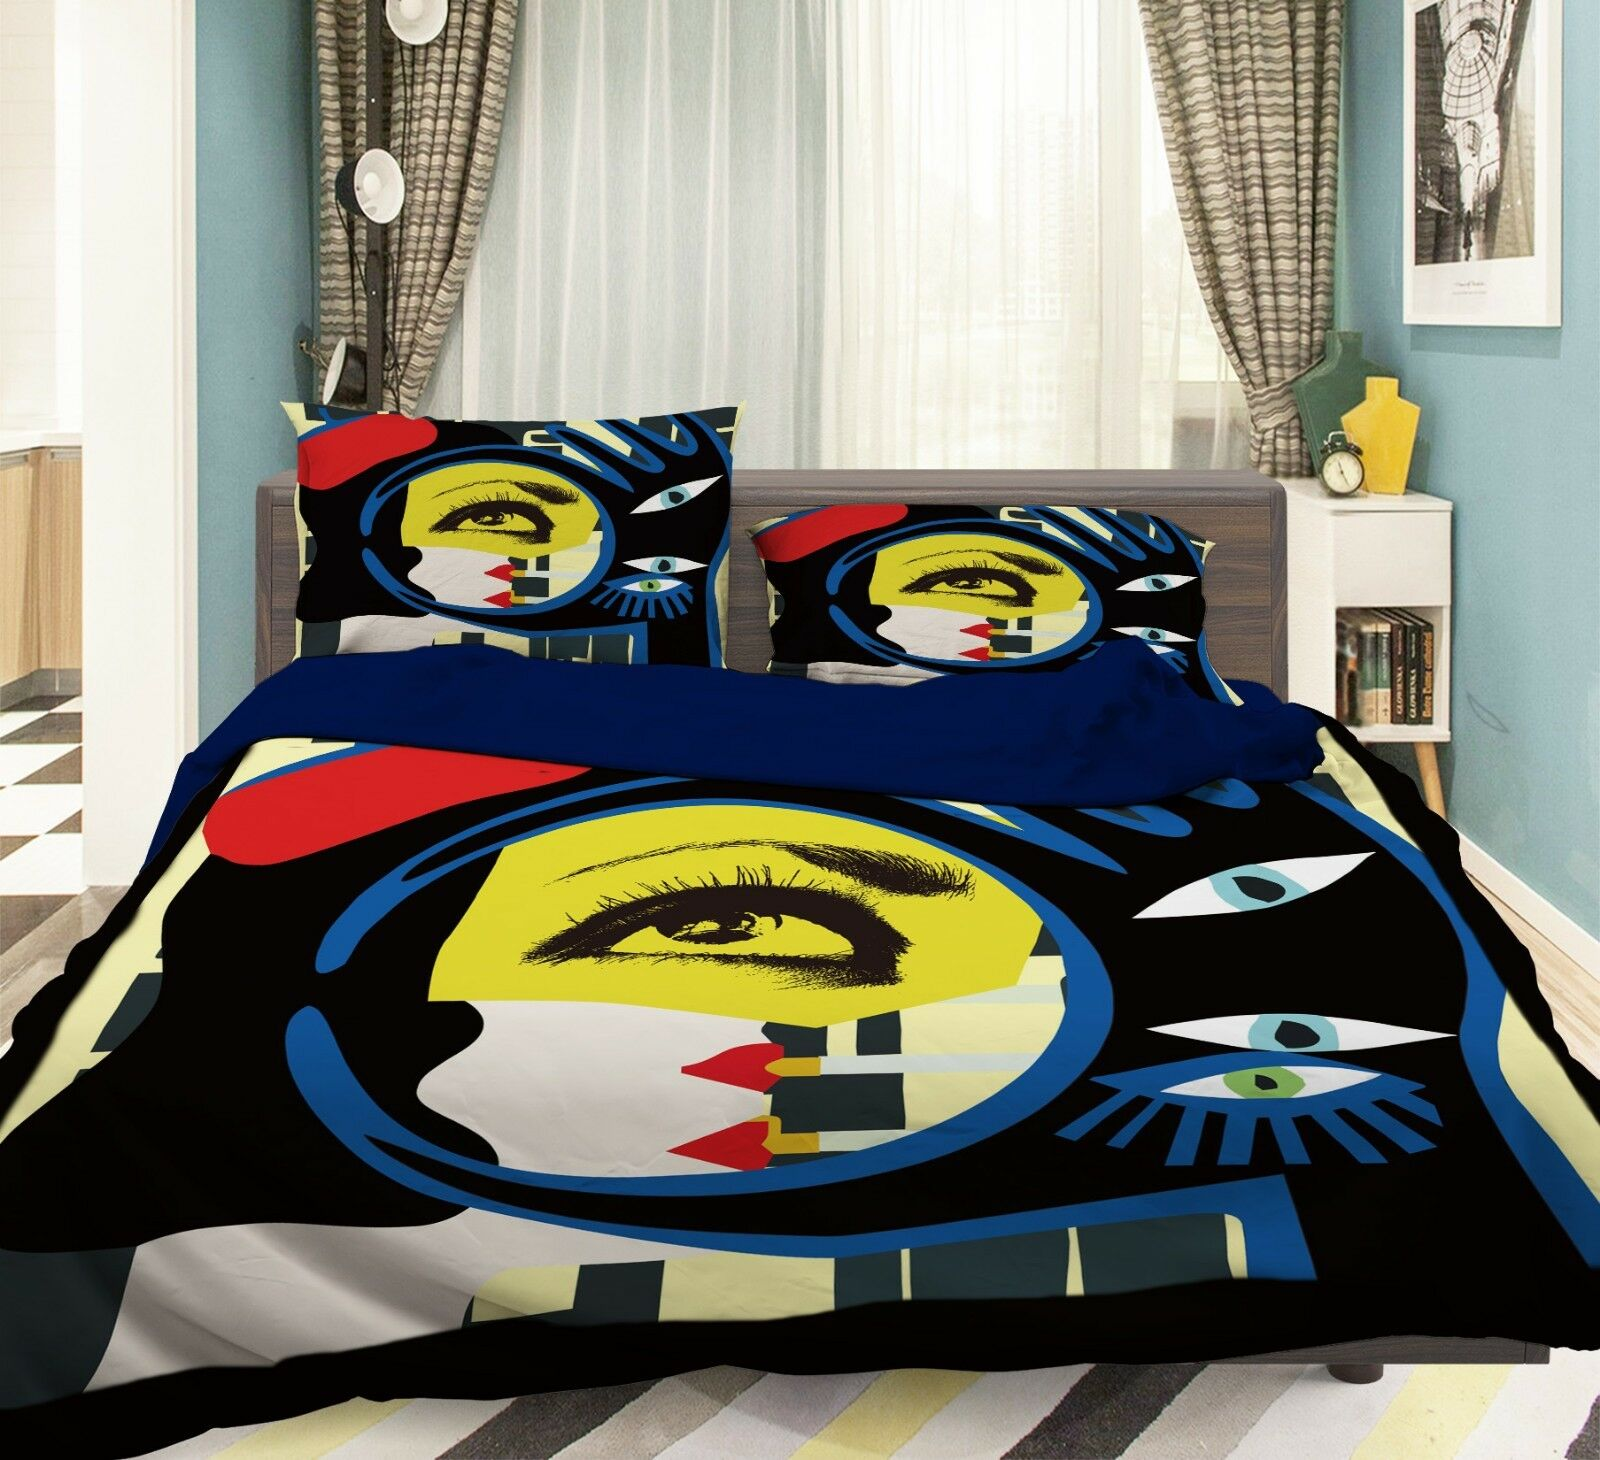 3D Graffiti Eyes 6 Bed Pillowcases Quilt Duvet Cover Set Single Queen AU Carly